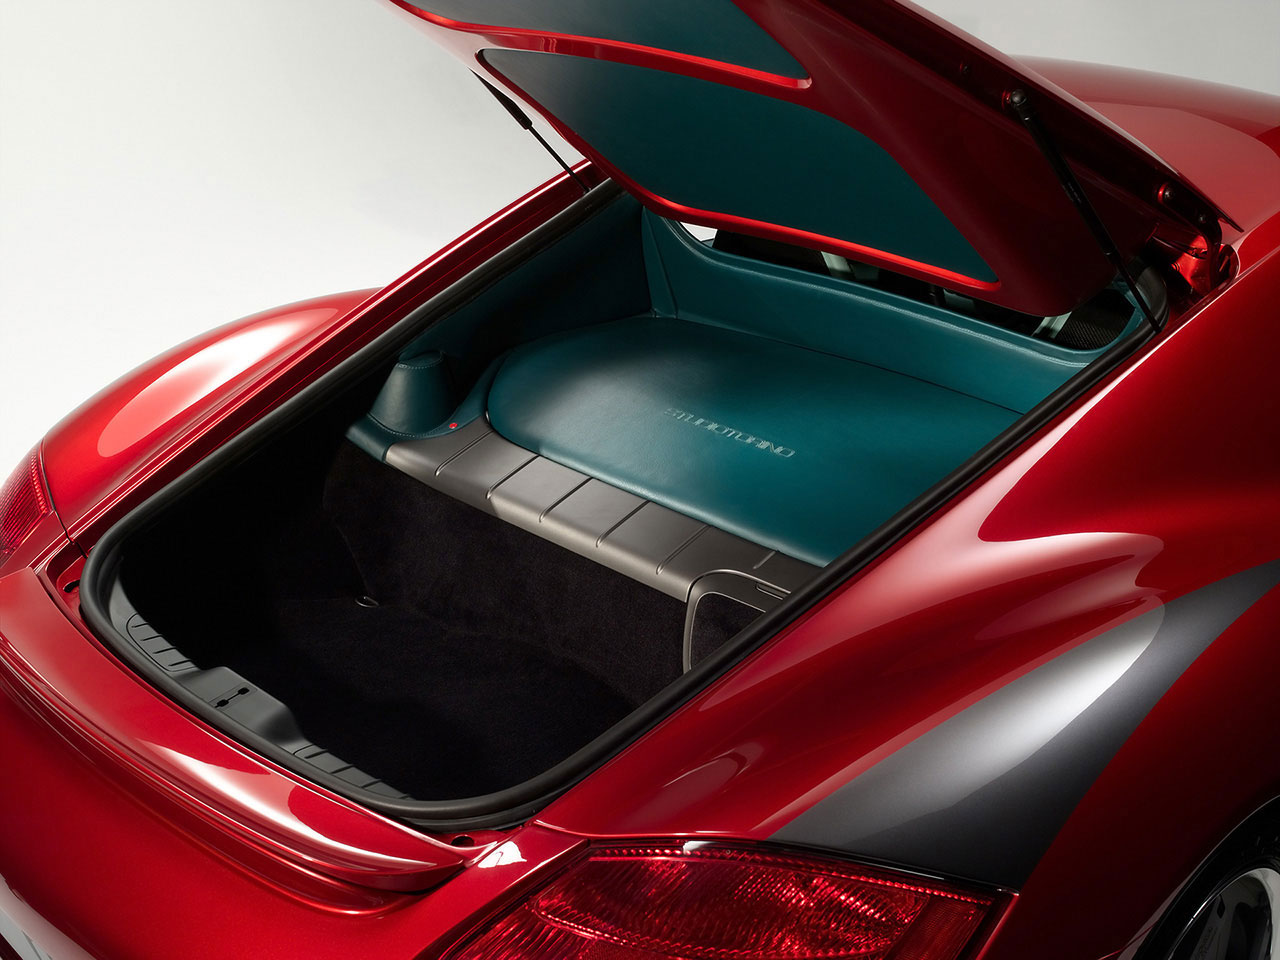 Ruf Rk Coupe Cayman 2007 Cartype